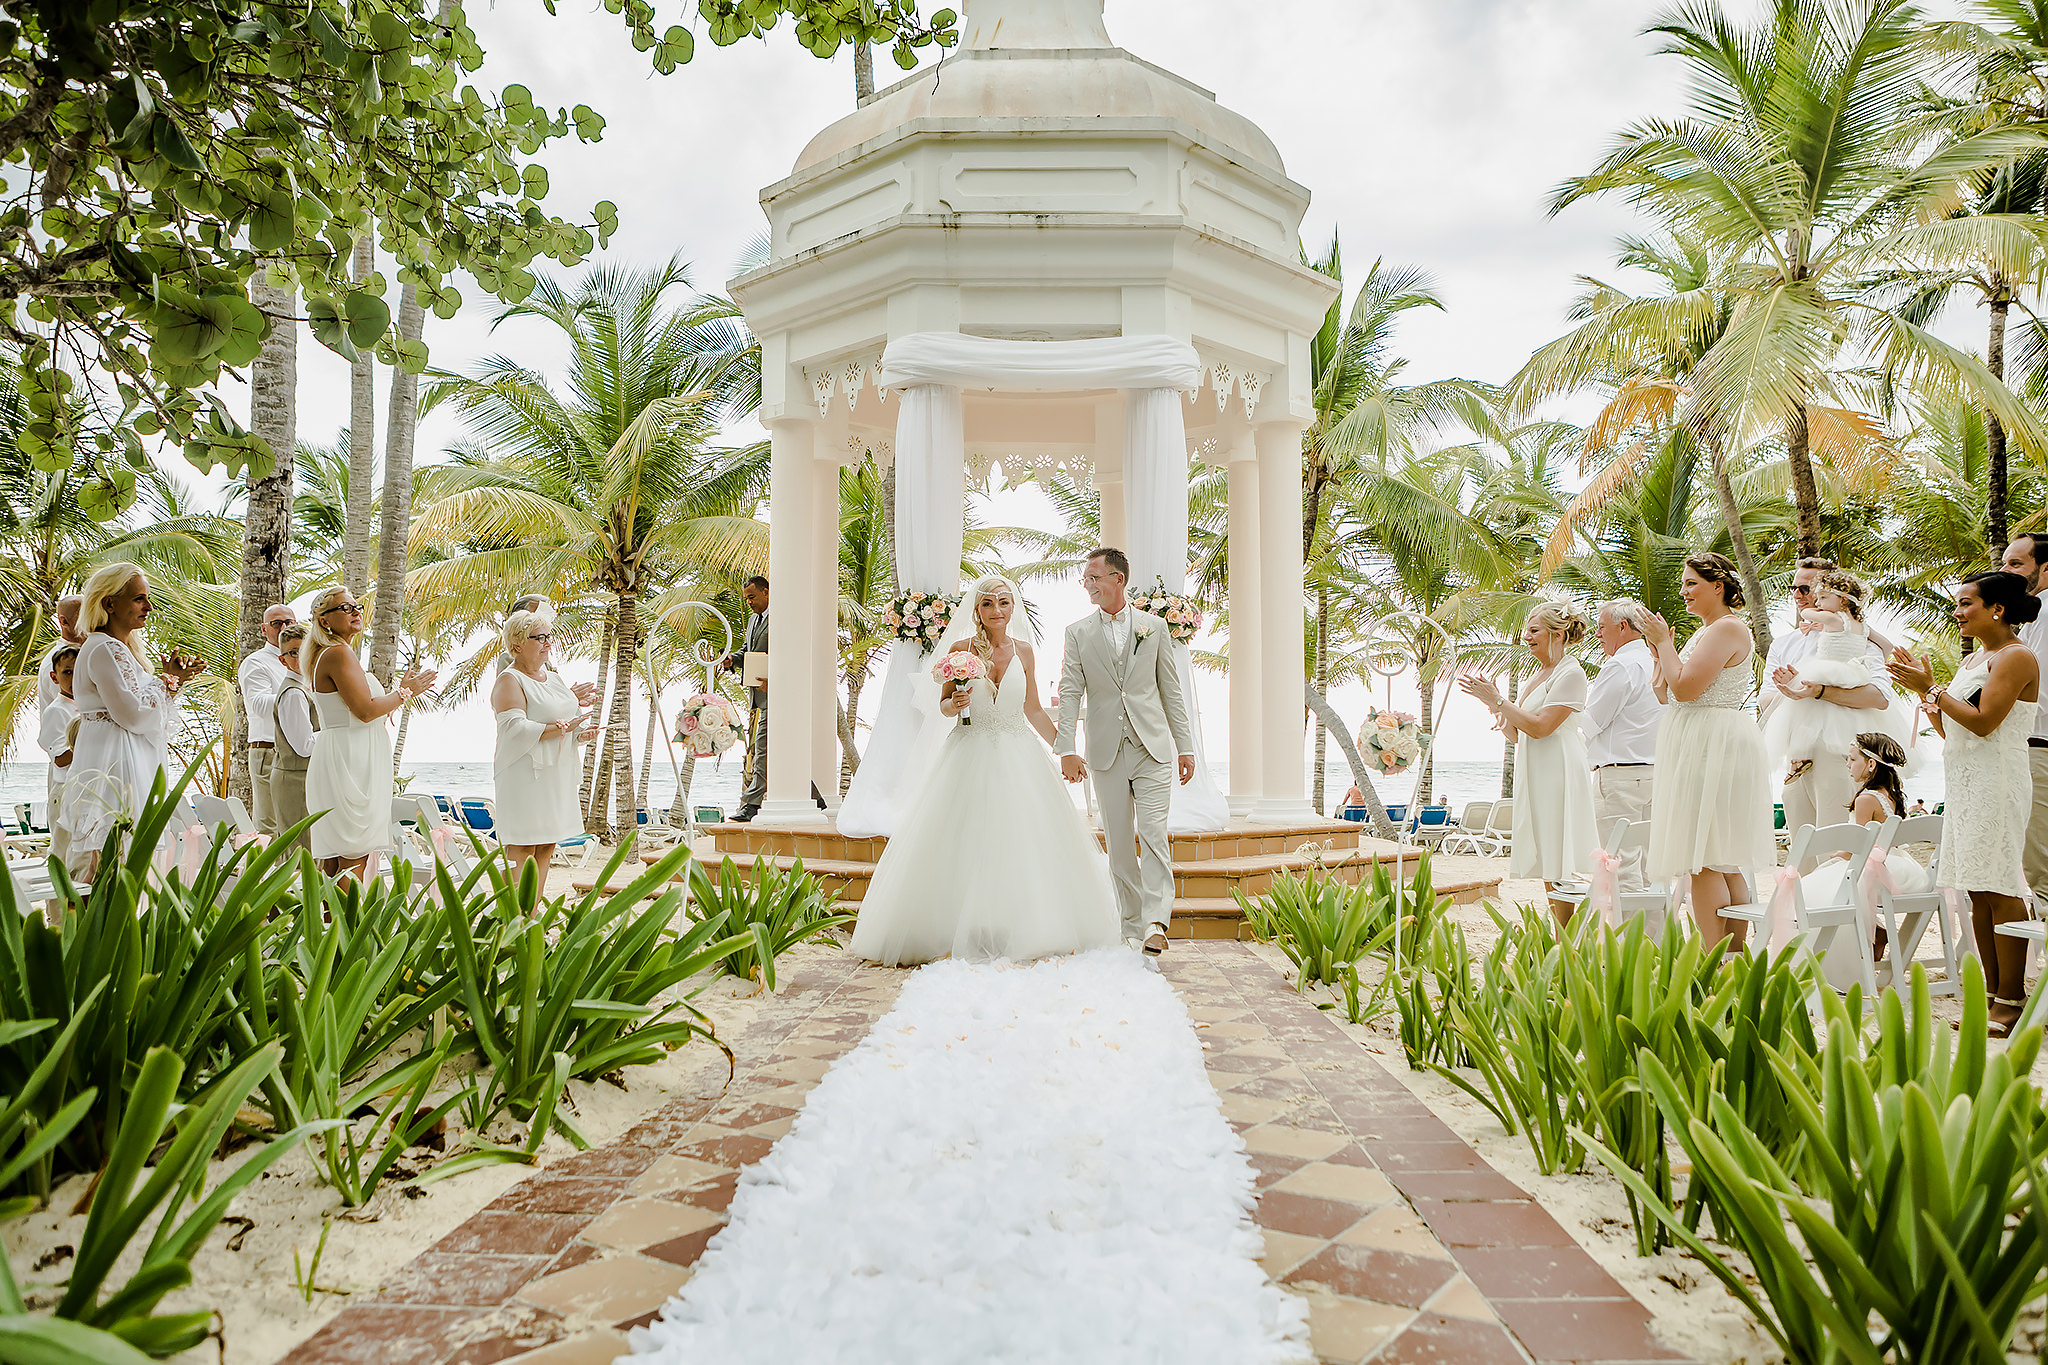 destination-wedding-bas-driessen-photography-trouwen-in-het-buitenland-caribbean